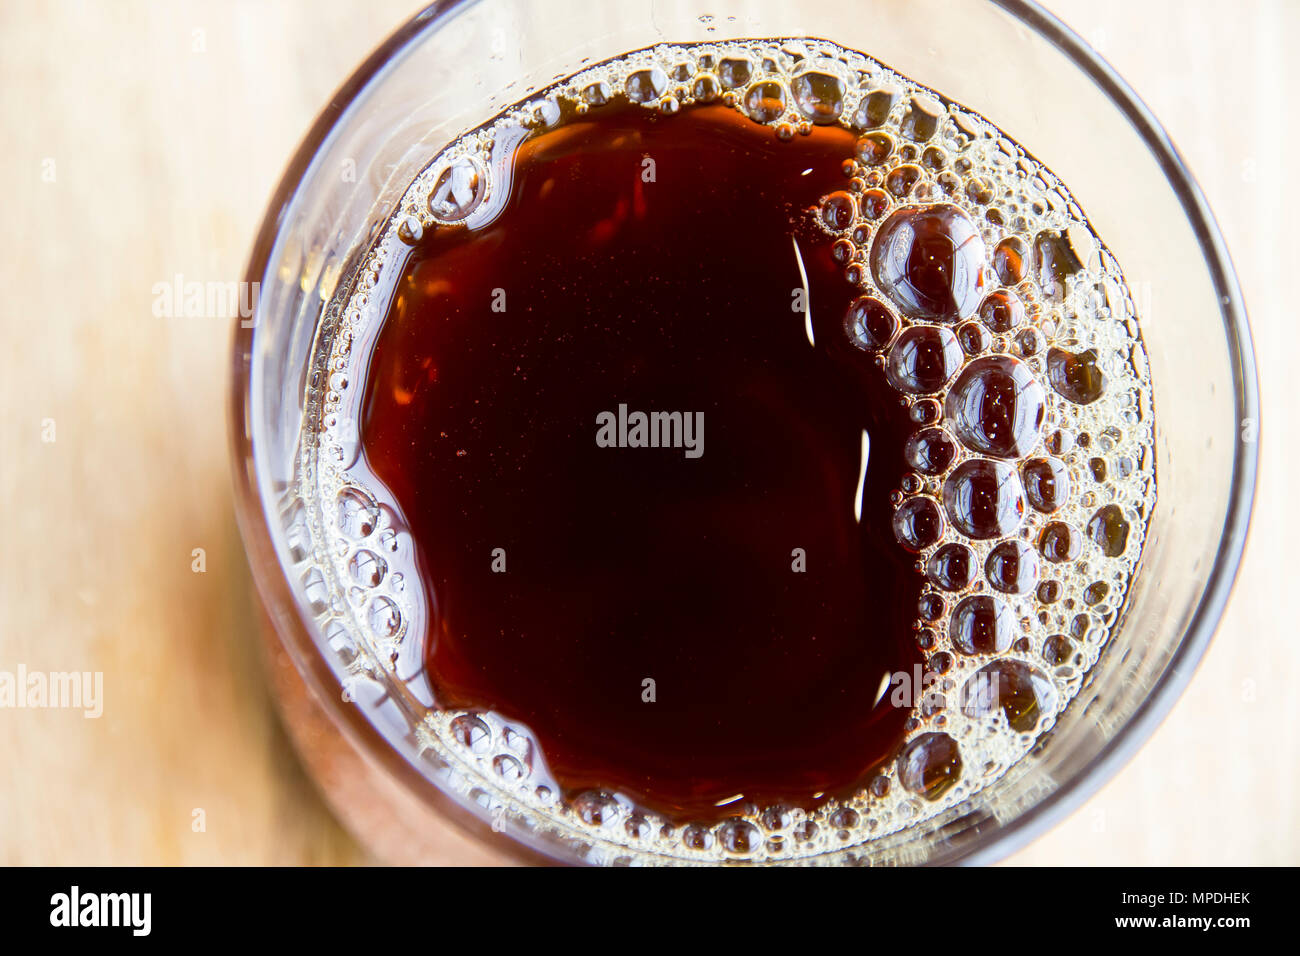 Freshly Brewed Coffee With Bubbles And Flare In Glass On Table Top